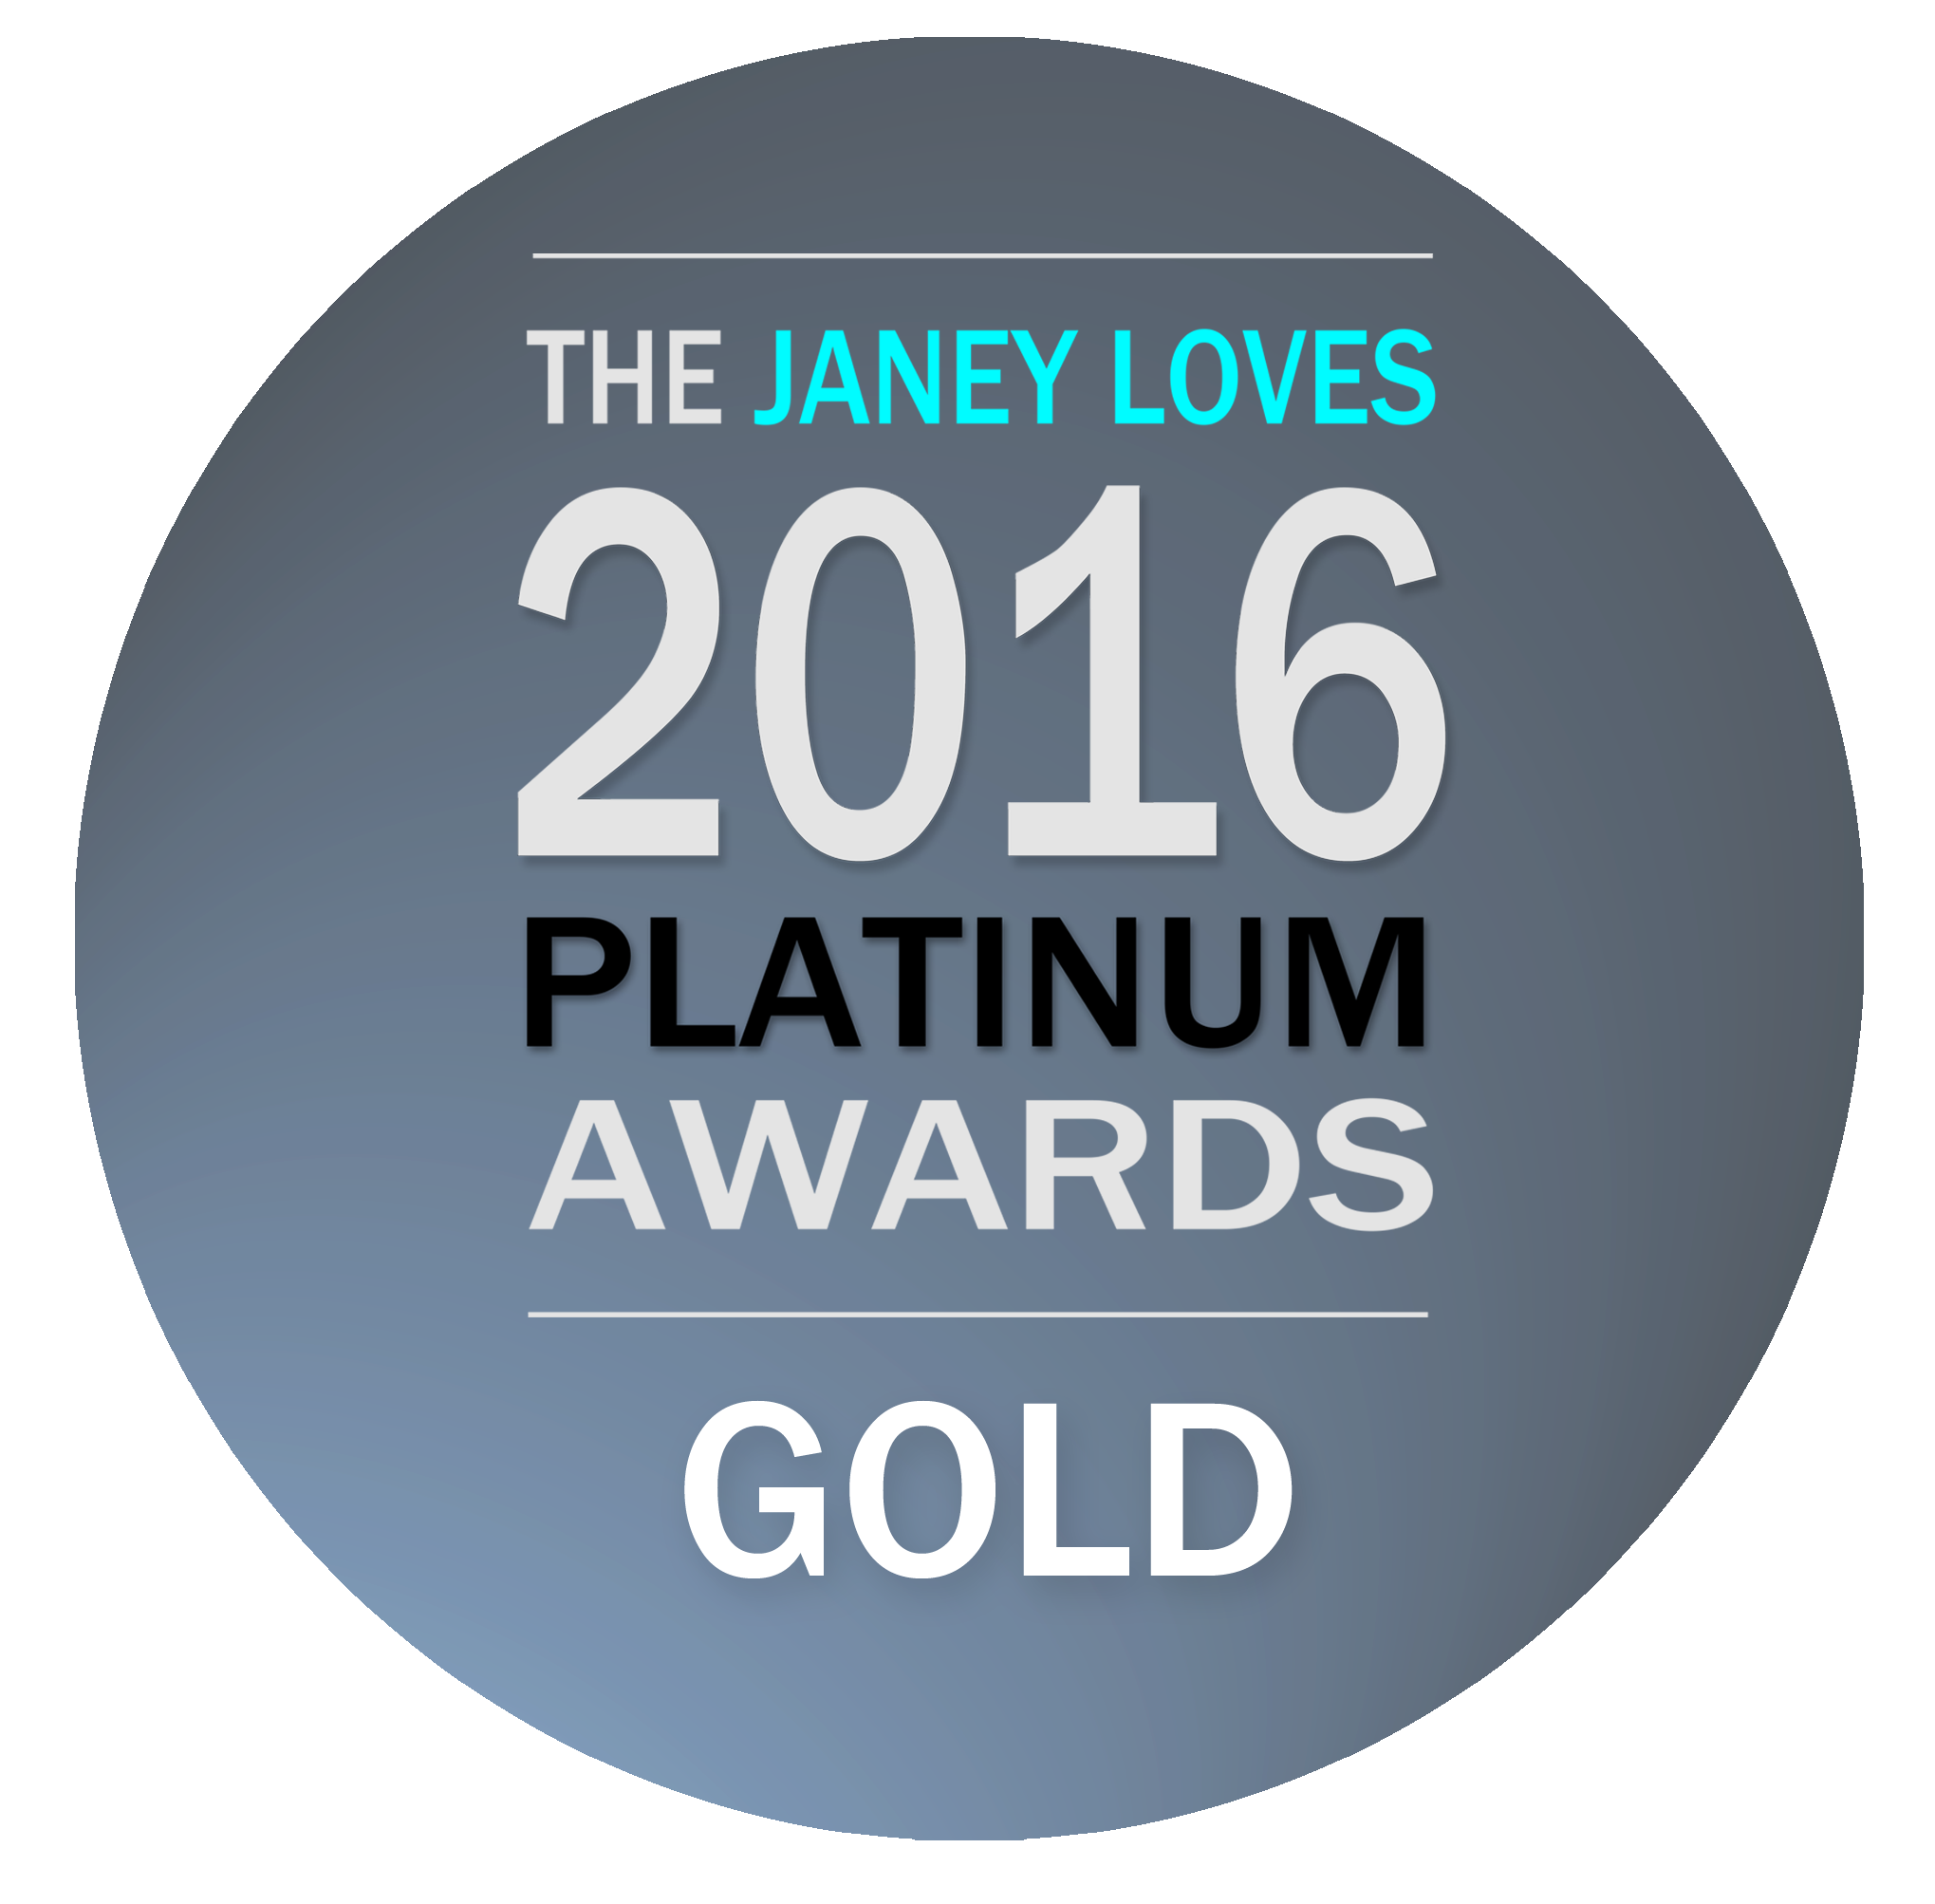 GOLD Award in the Janey Loves 2016 PLATINUM AWARD